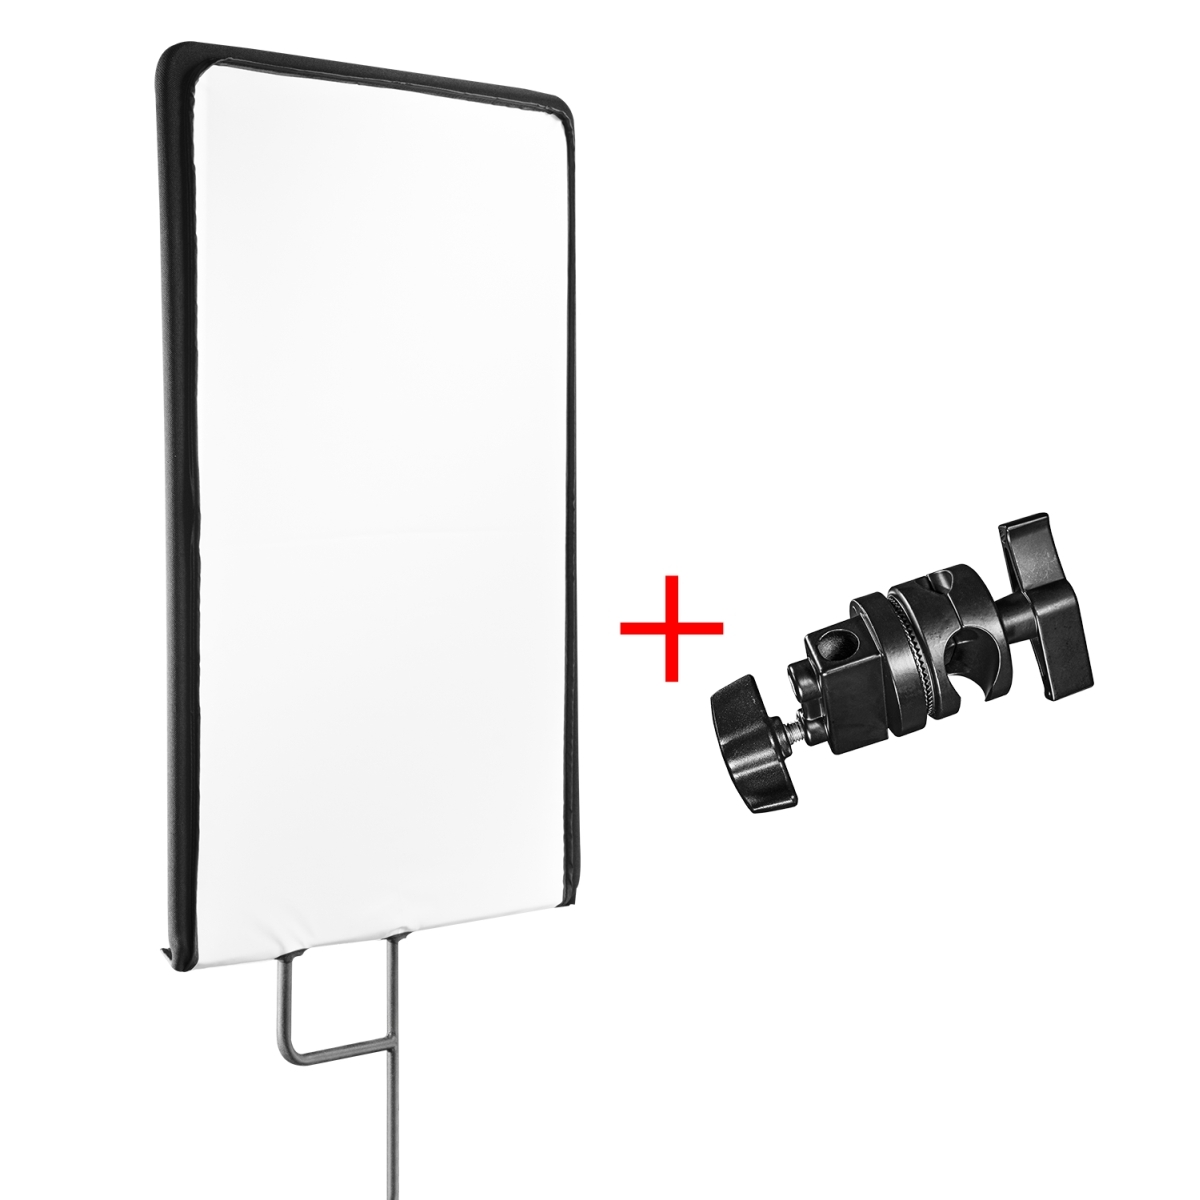 Walimex pro 4in1 Reflector Panel, 75x90cm + clamp